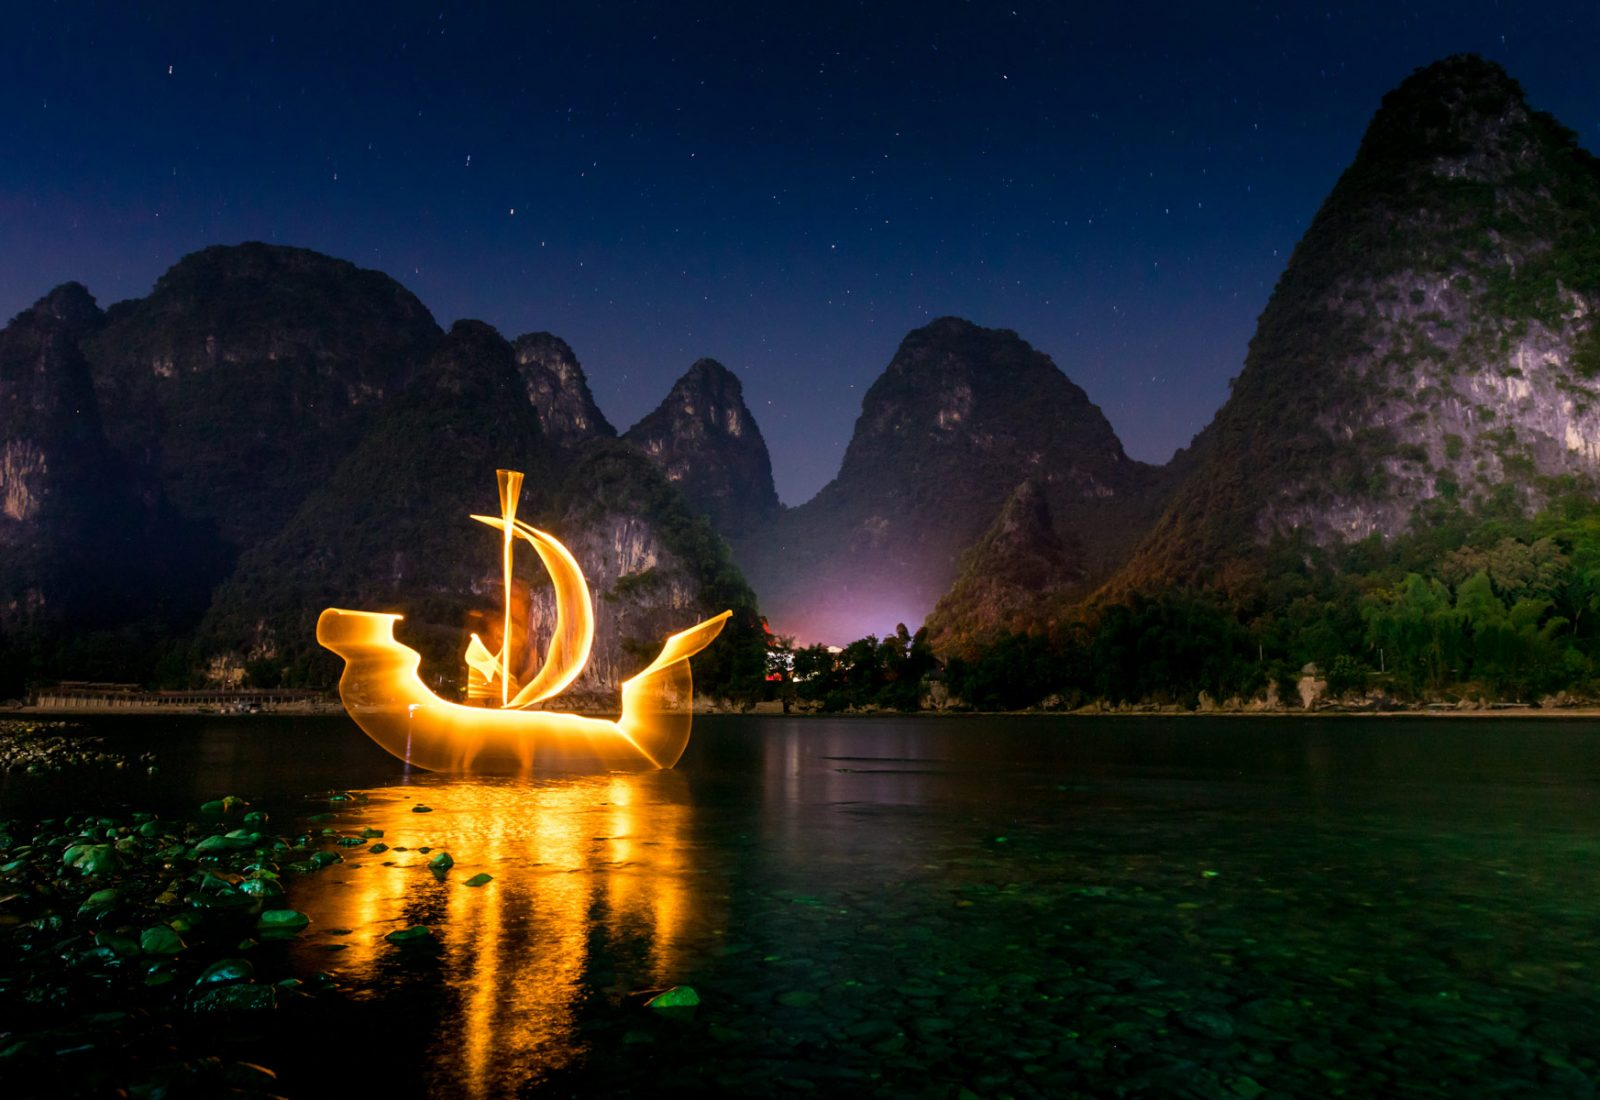 The Goest Ship - Light Painting